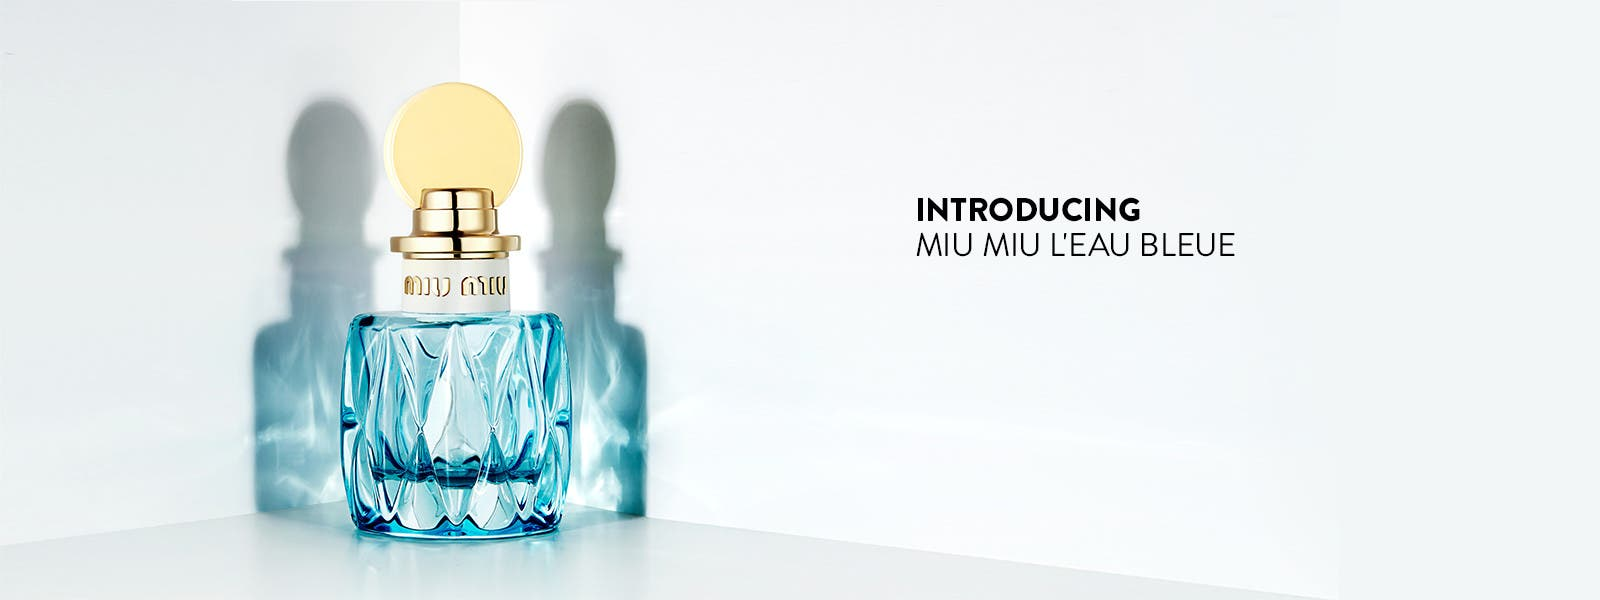 Introducing Miu Miu L'Eau Bleue.